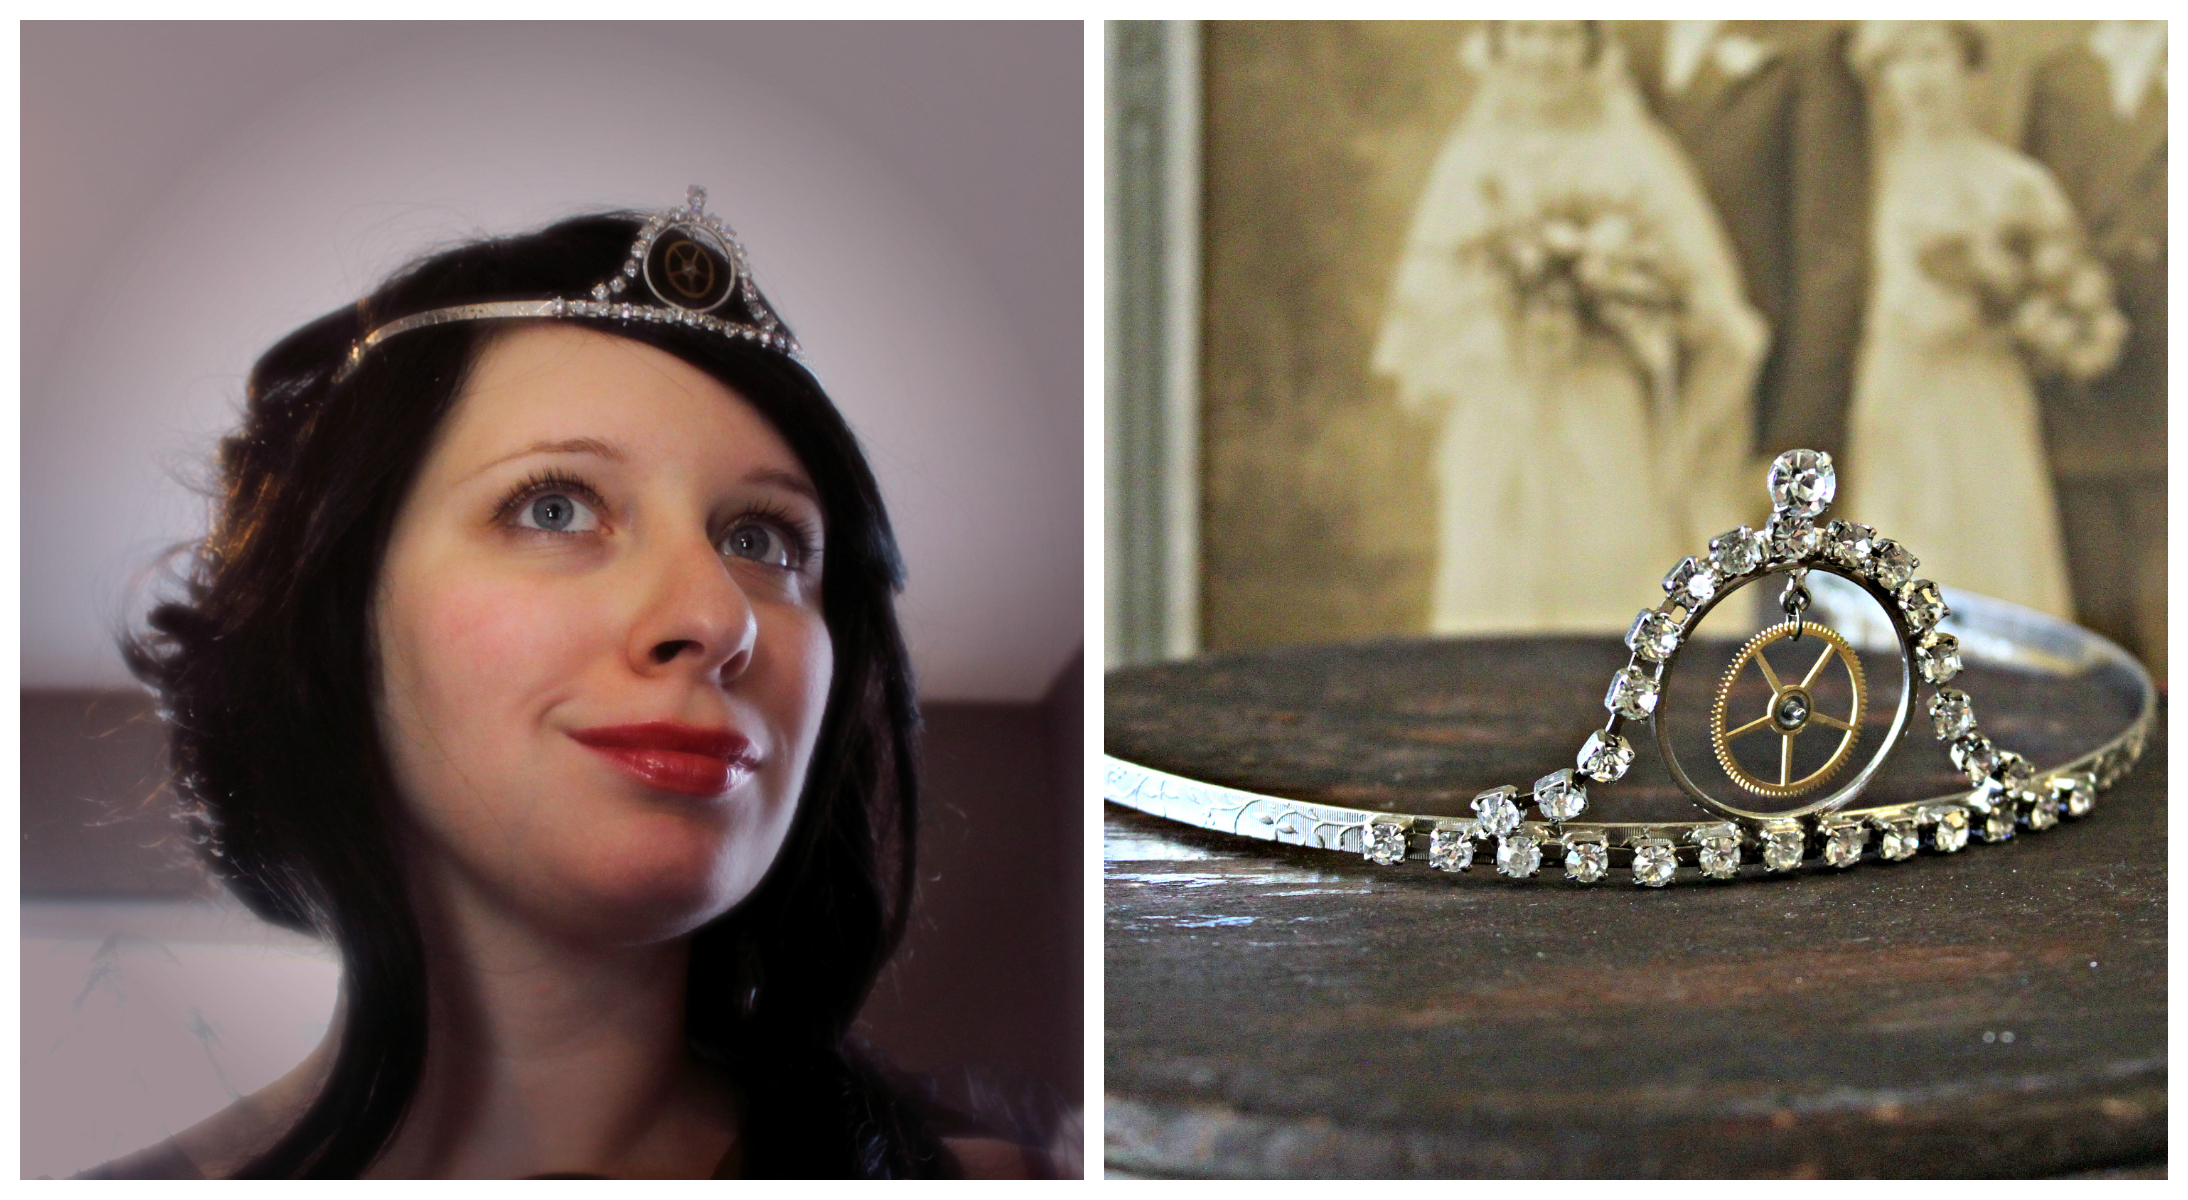 Steampunk Peaked Gear Tiara Collage